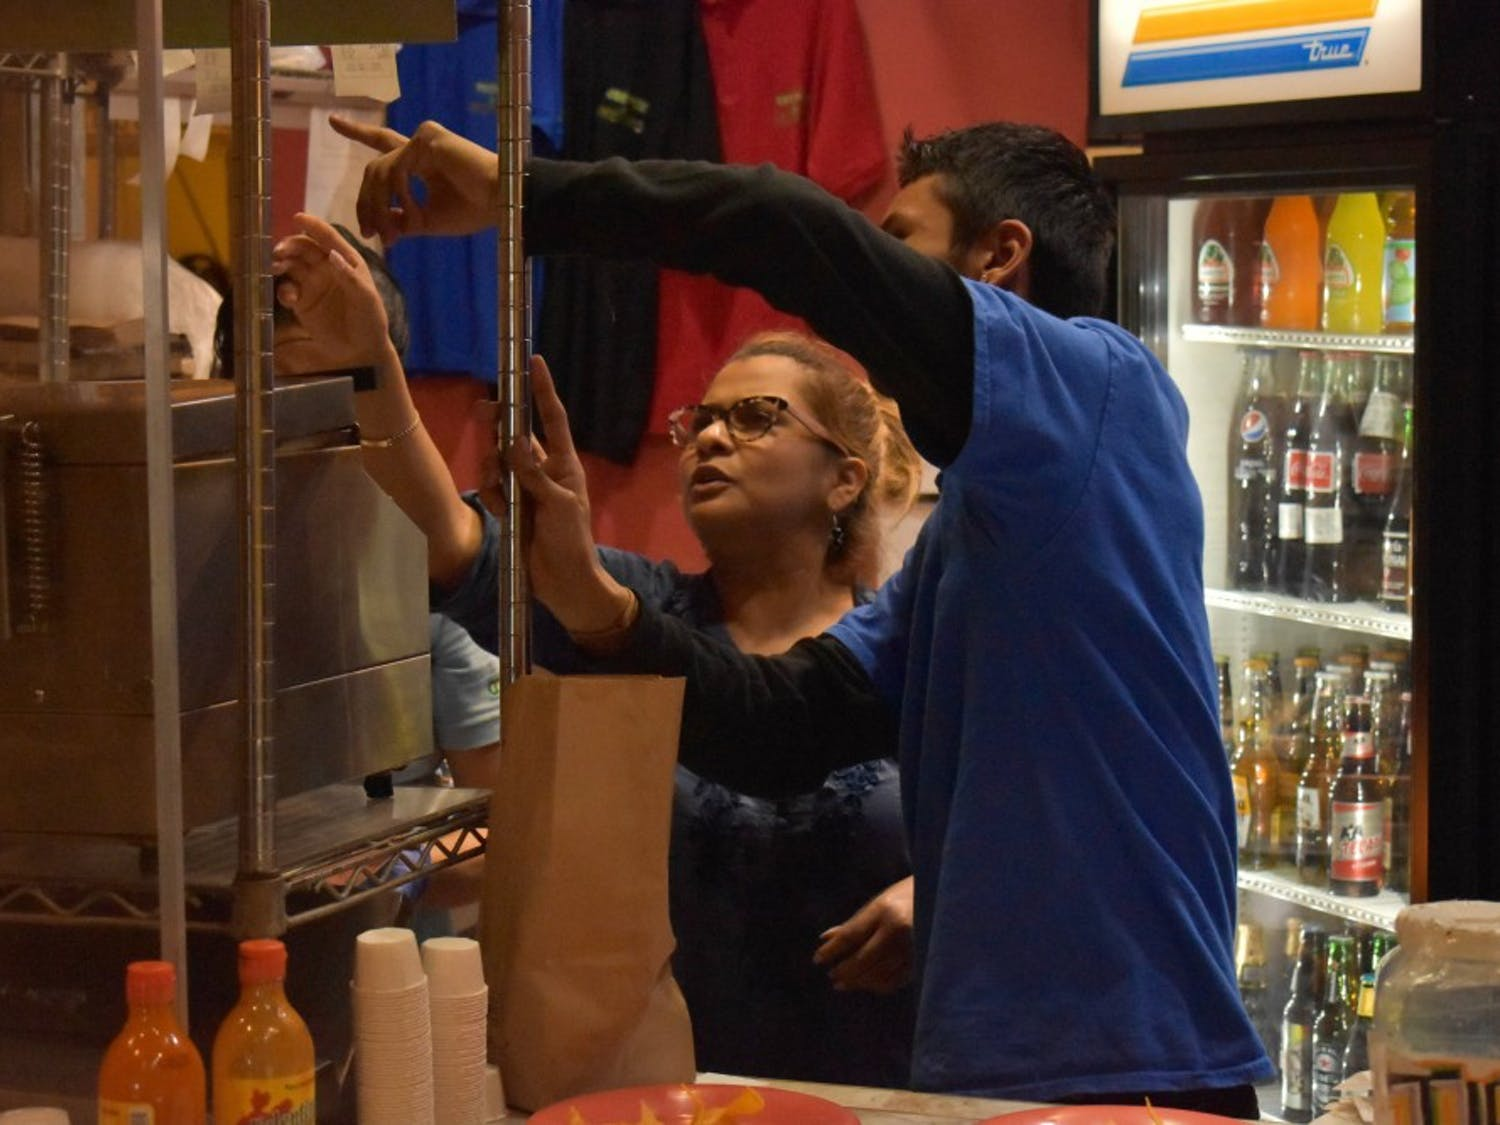 Cosmic employees Ismael Martinez and Argelia Cisneros work hard to prepare food for their loyal customers.